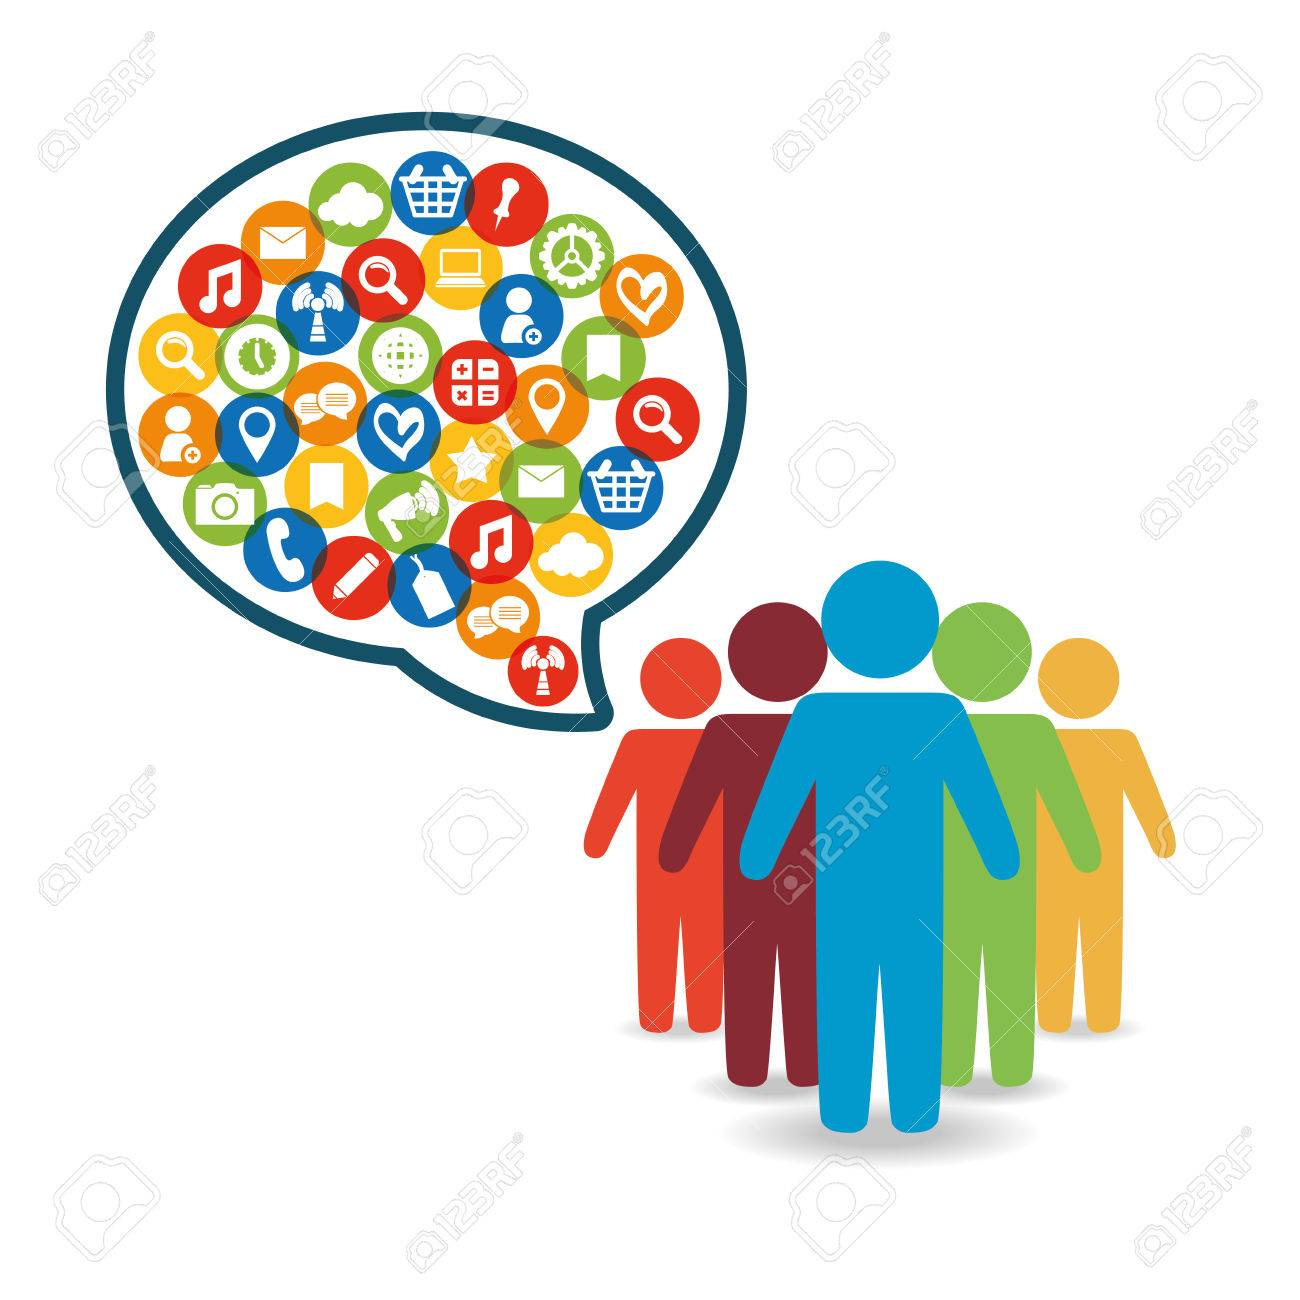 Social Network People Message World Customer Icon Royalty Free Cliparts Vectors And Stock Illustration Image 64459244 Customer service icons with reflect on white vector. social network people message world customer icon